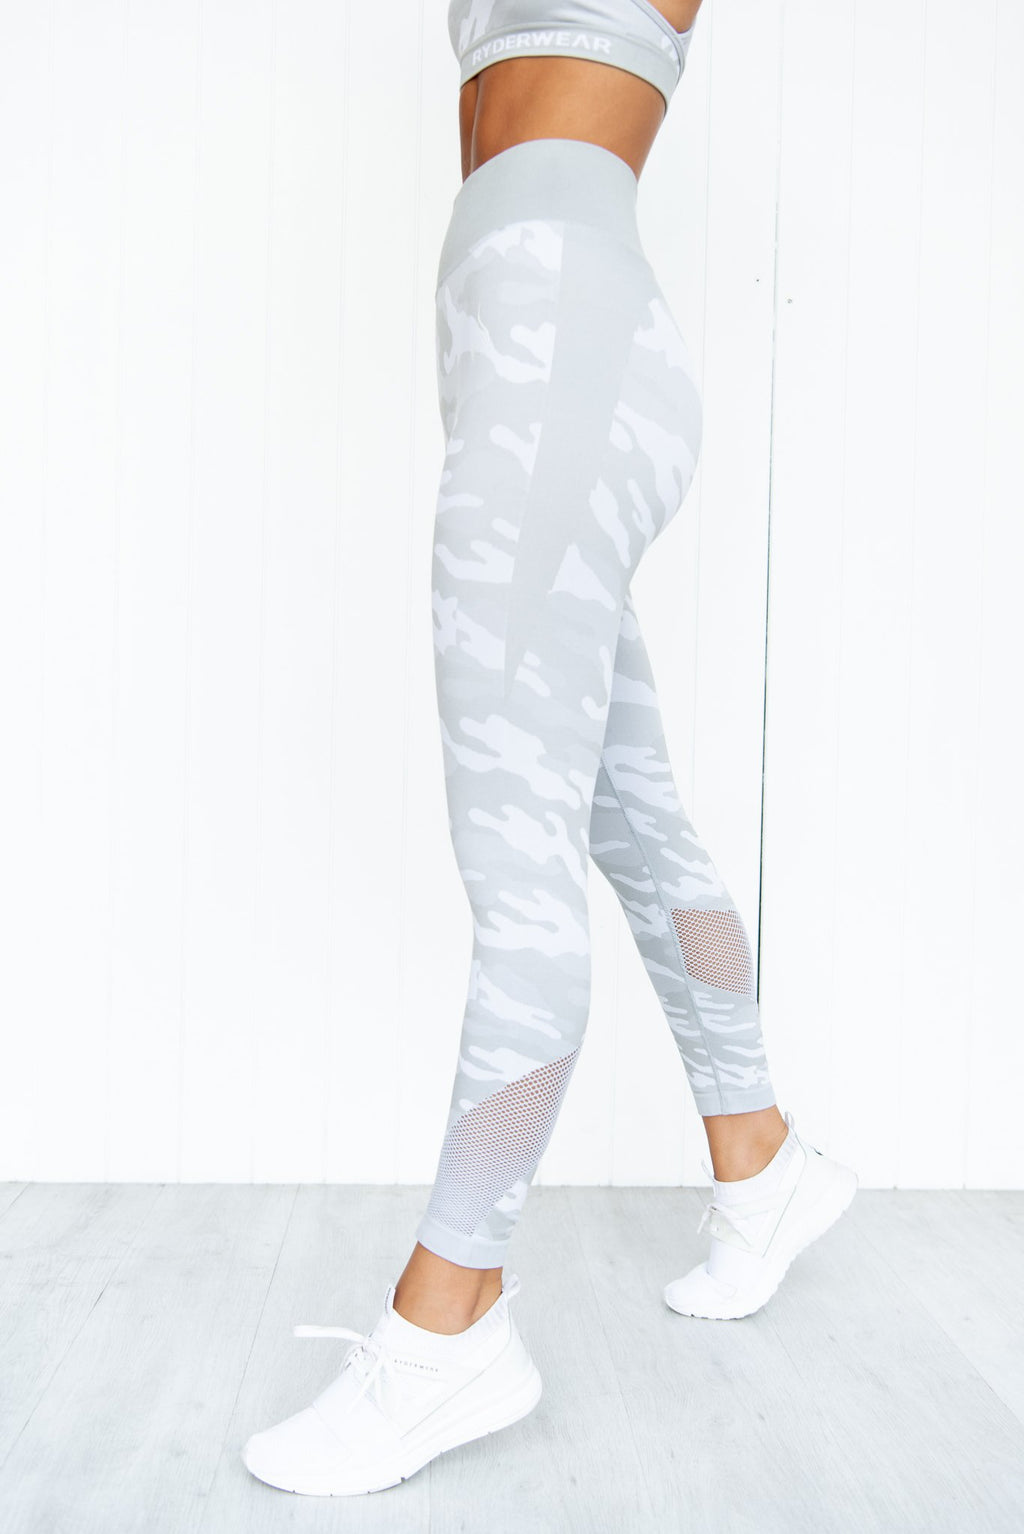 Seamless Tights - Grey Camo - PURE DASH